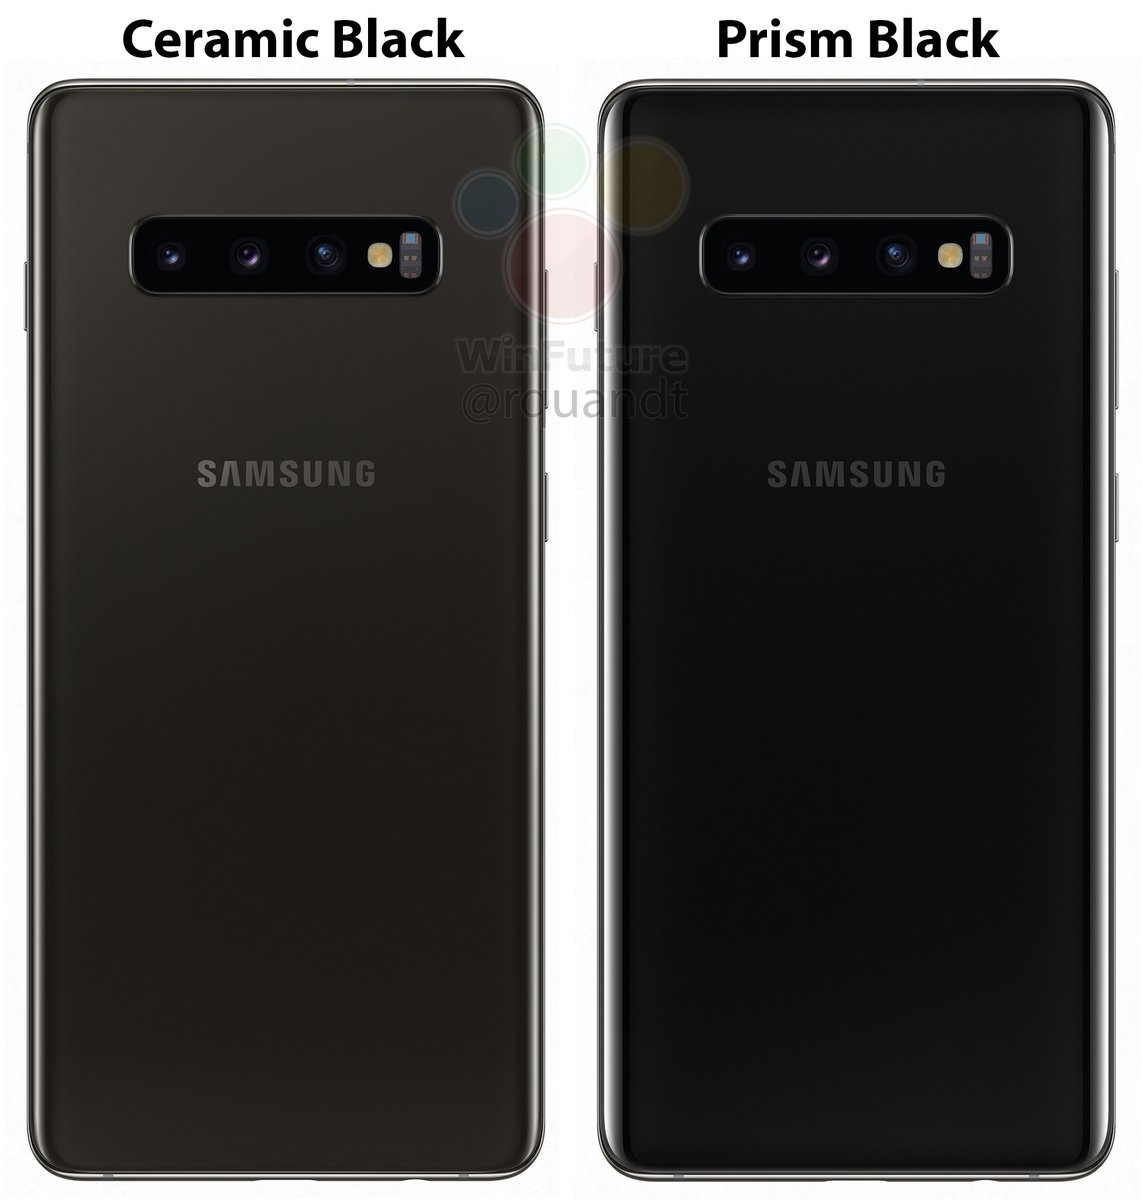 Ceramic Black Galaxy S10+